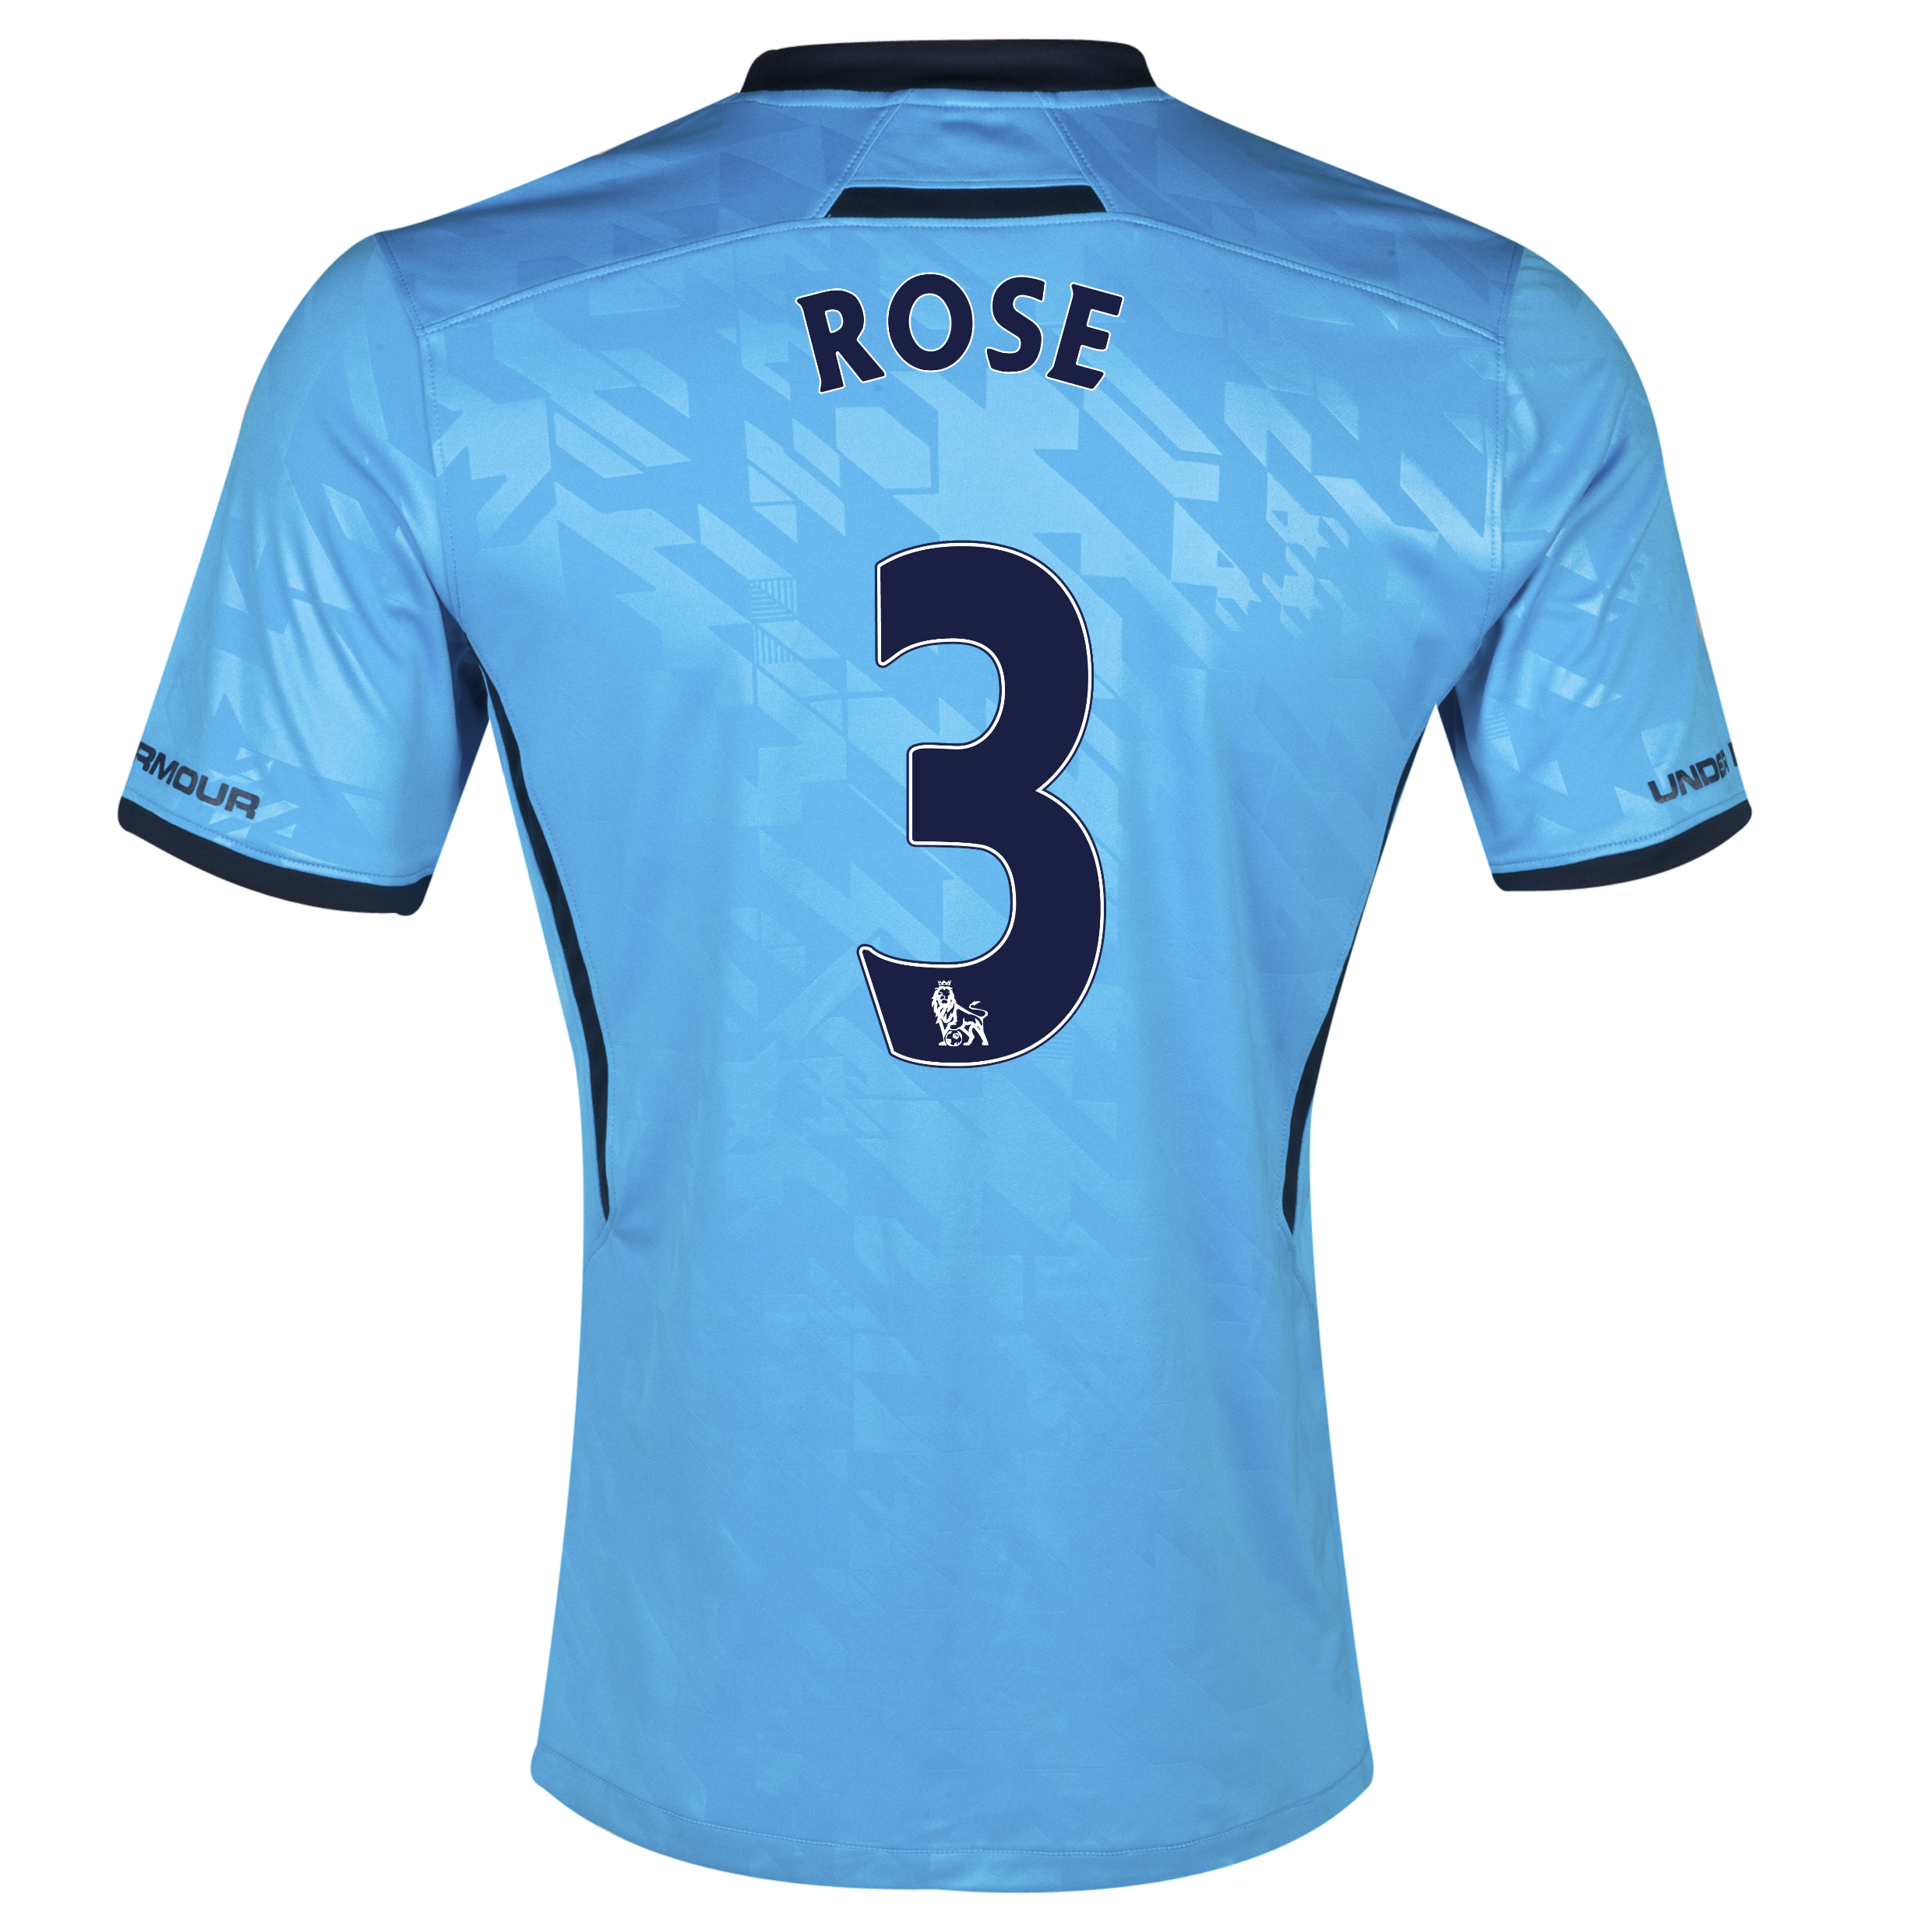 Tottenham Hotspur Away Shirt 2013/14 - Womens with Rose 3 printing